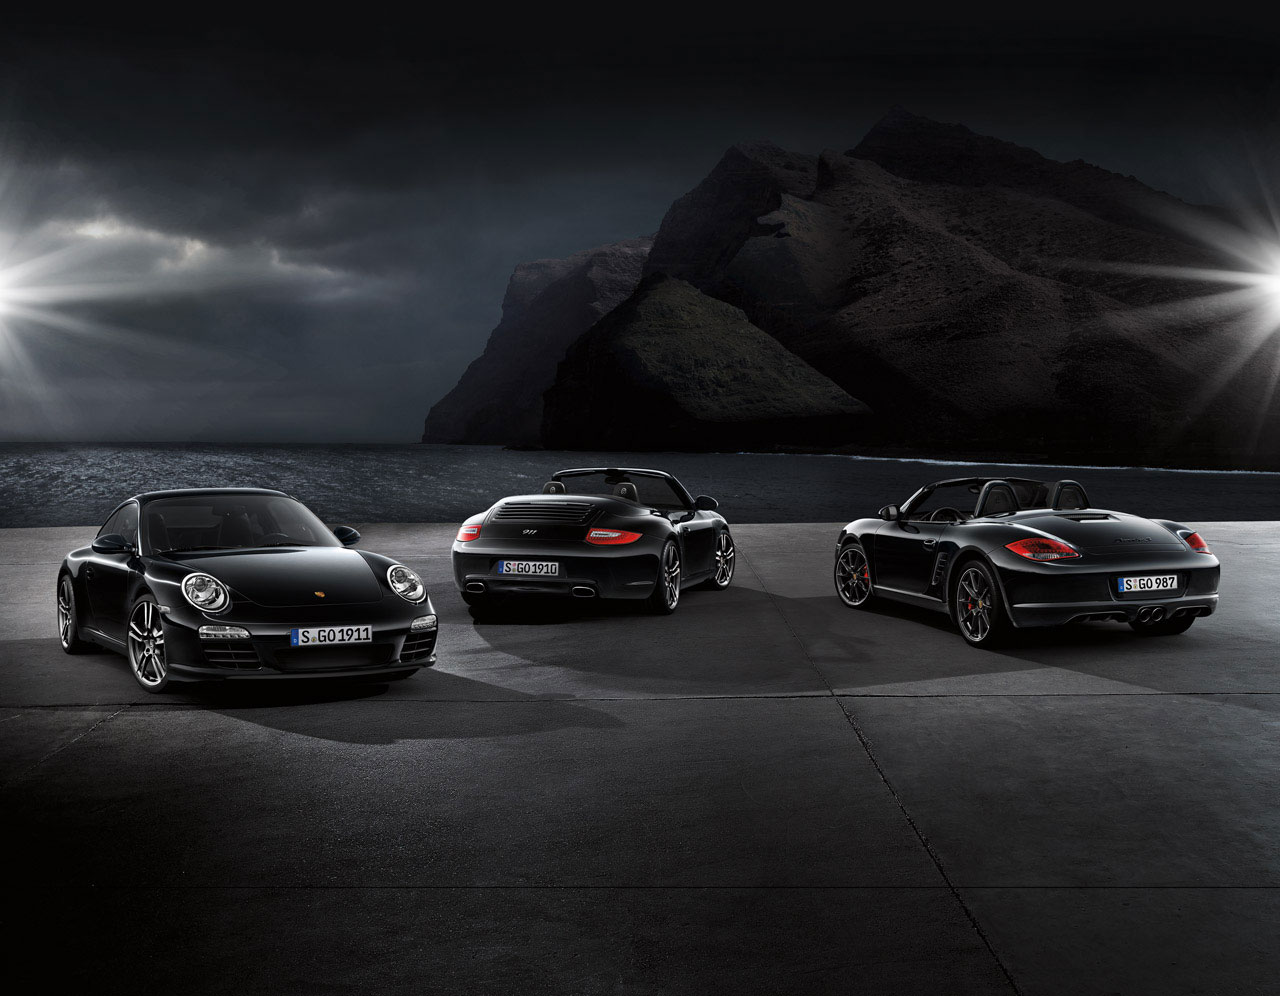 Porsche Boxster S Black Edition – Power of Attraction